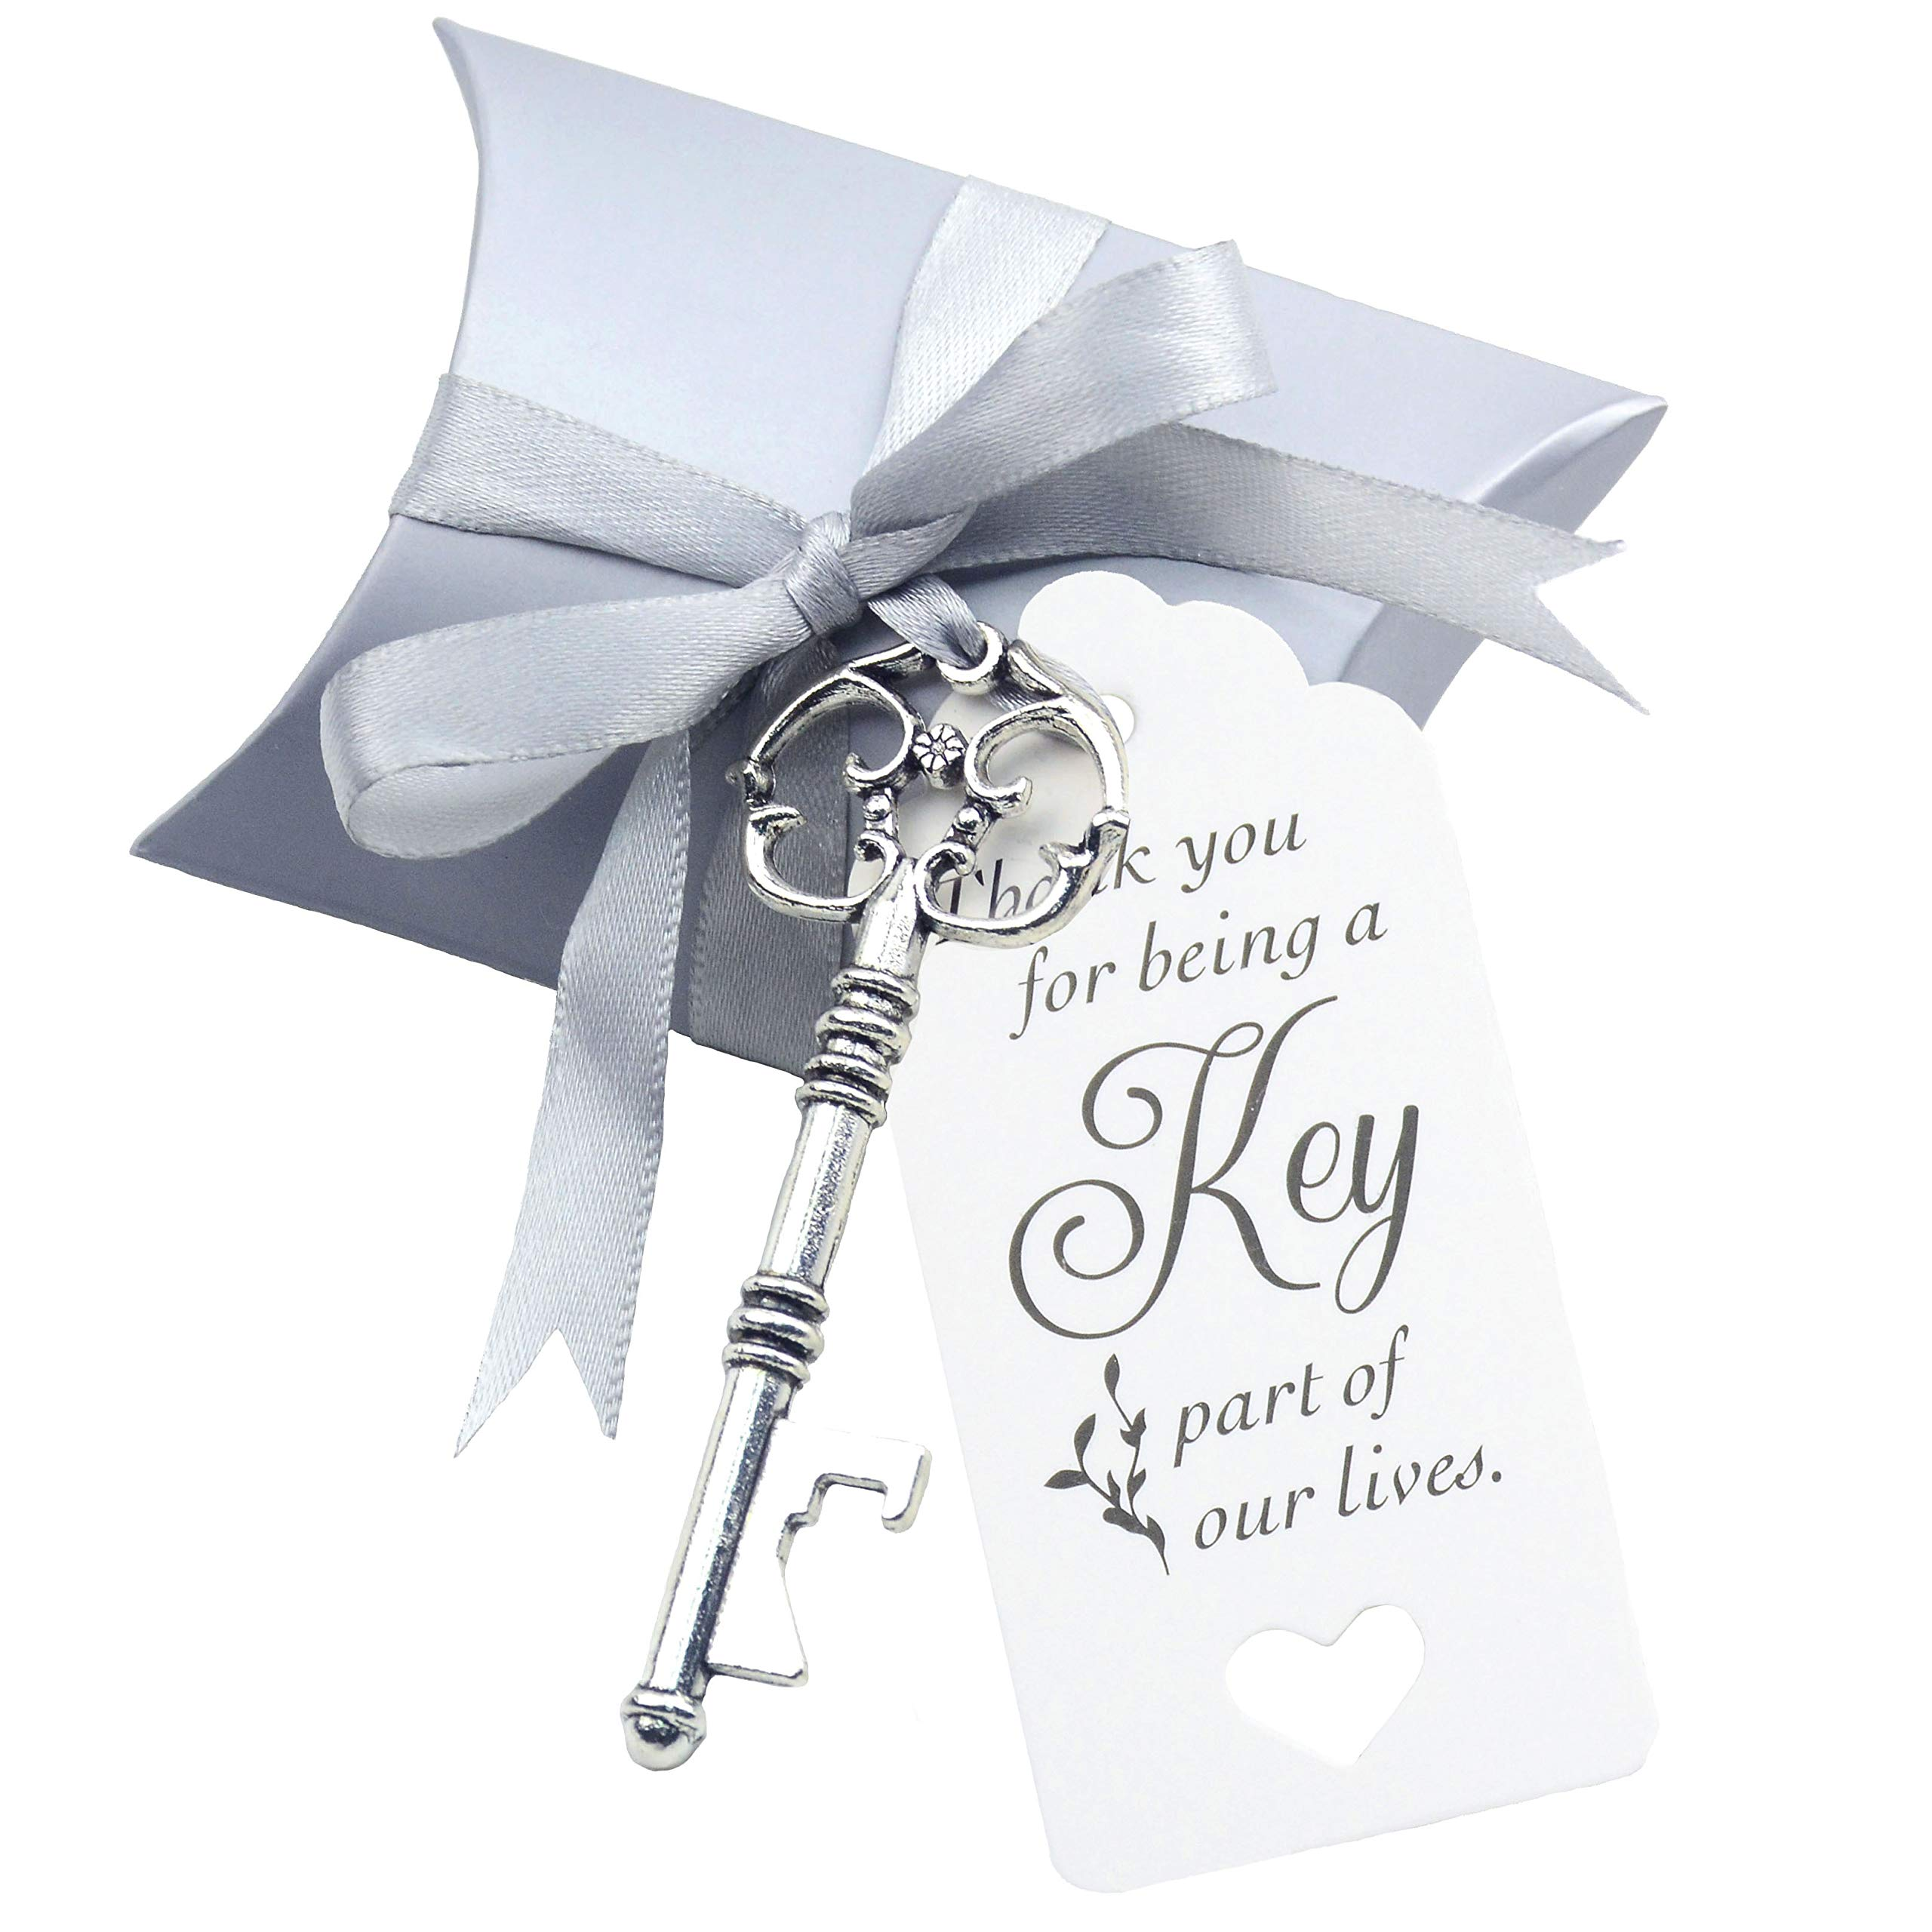 50pcs Wedding Favor Souvenir Gift Set Pillow Candy Box Vintage Skeleton Key Bottle Openers Escort Gift Card Thank You Tag French Ribbon (Antique Silver) by Makhry (Image #1)